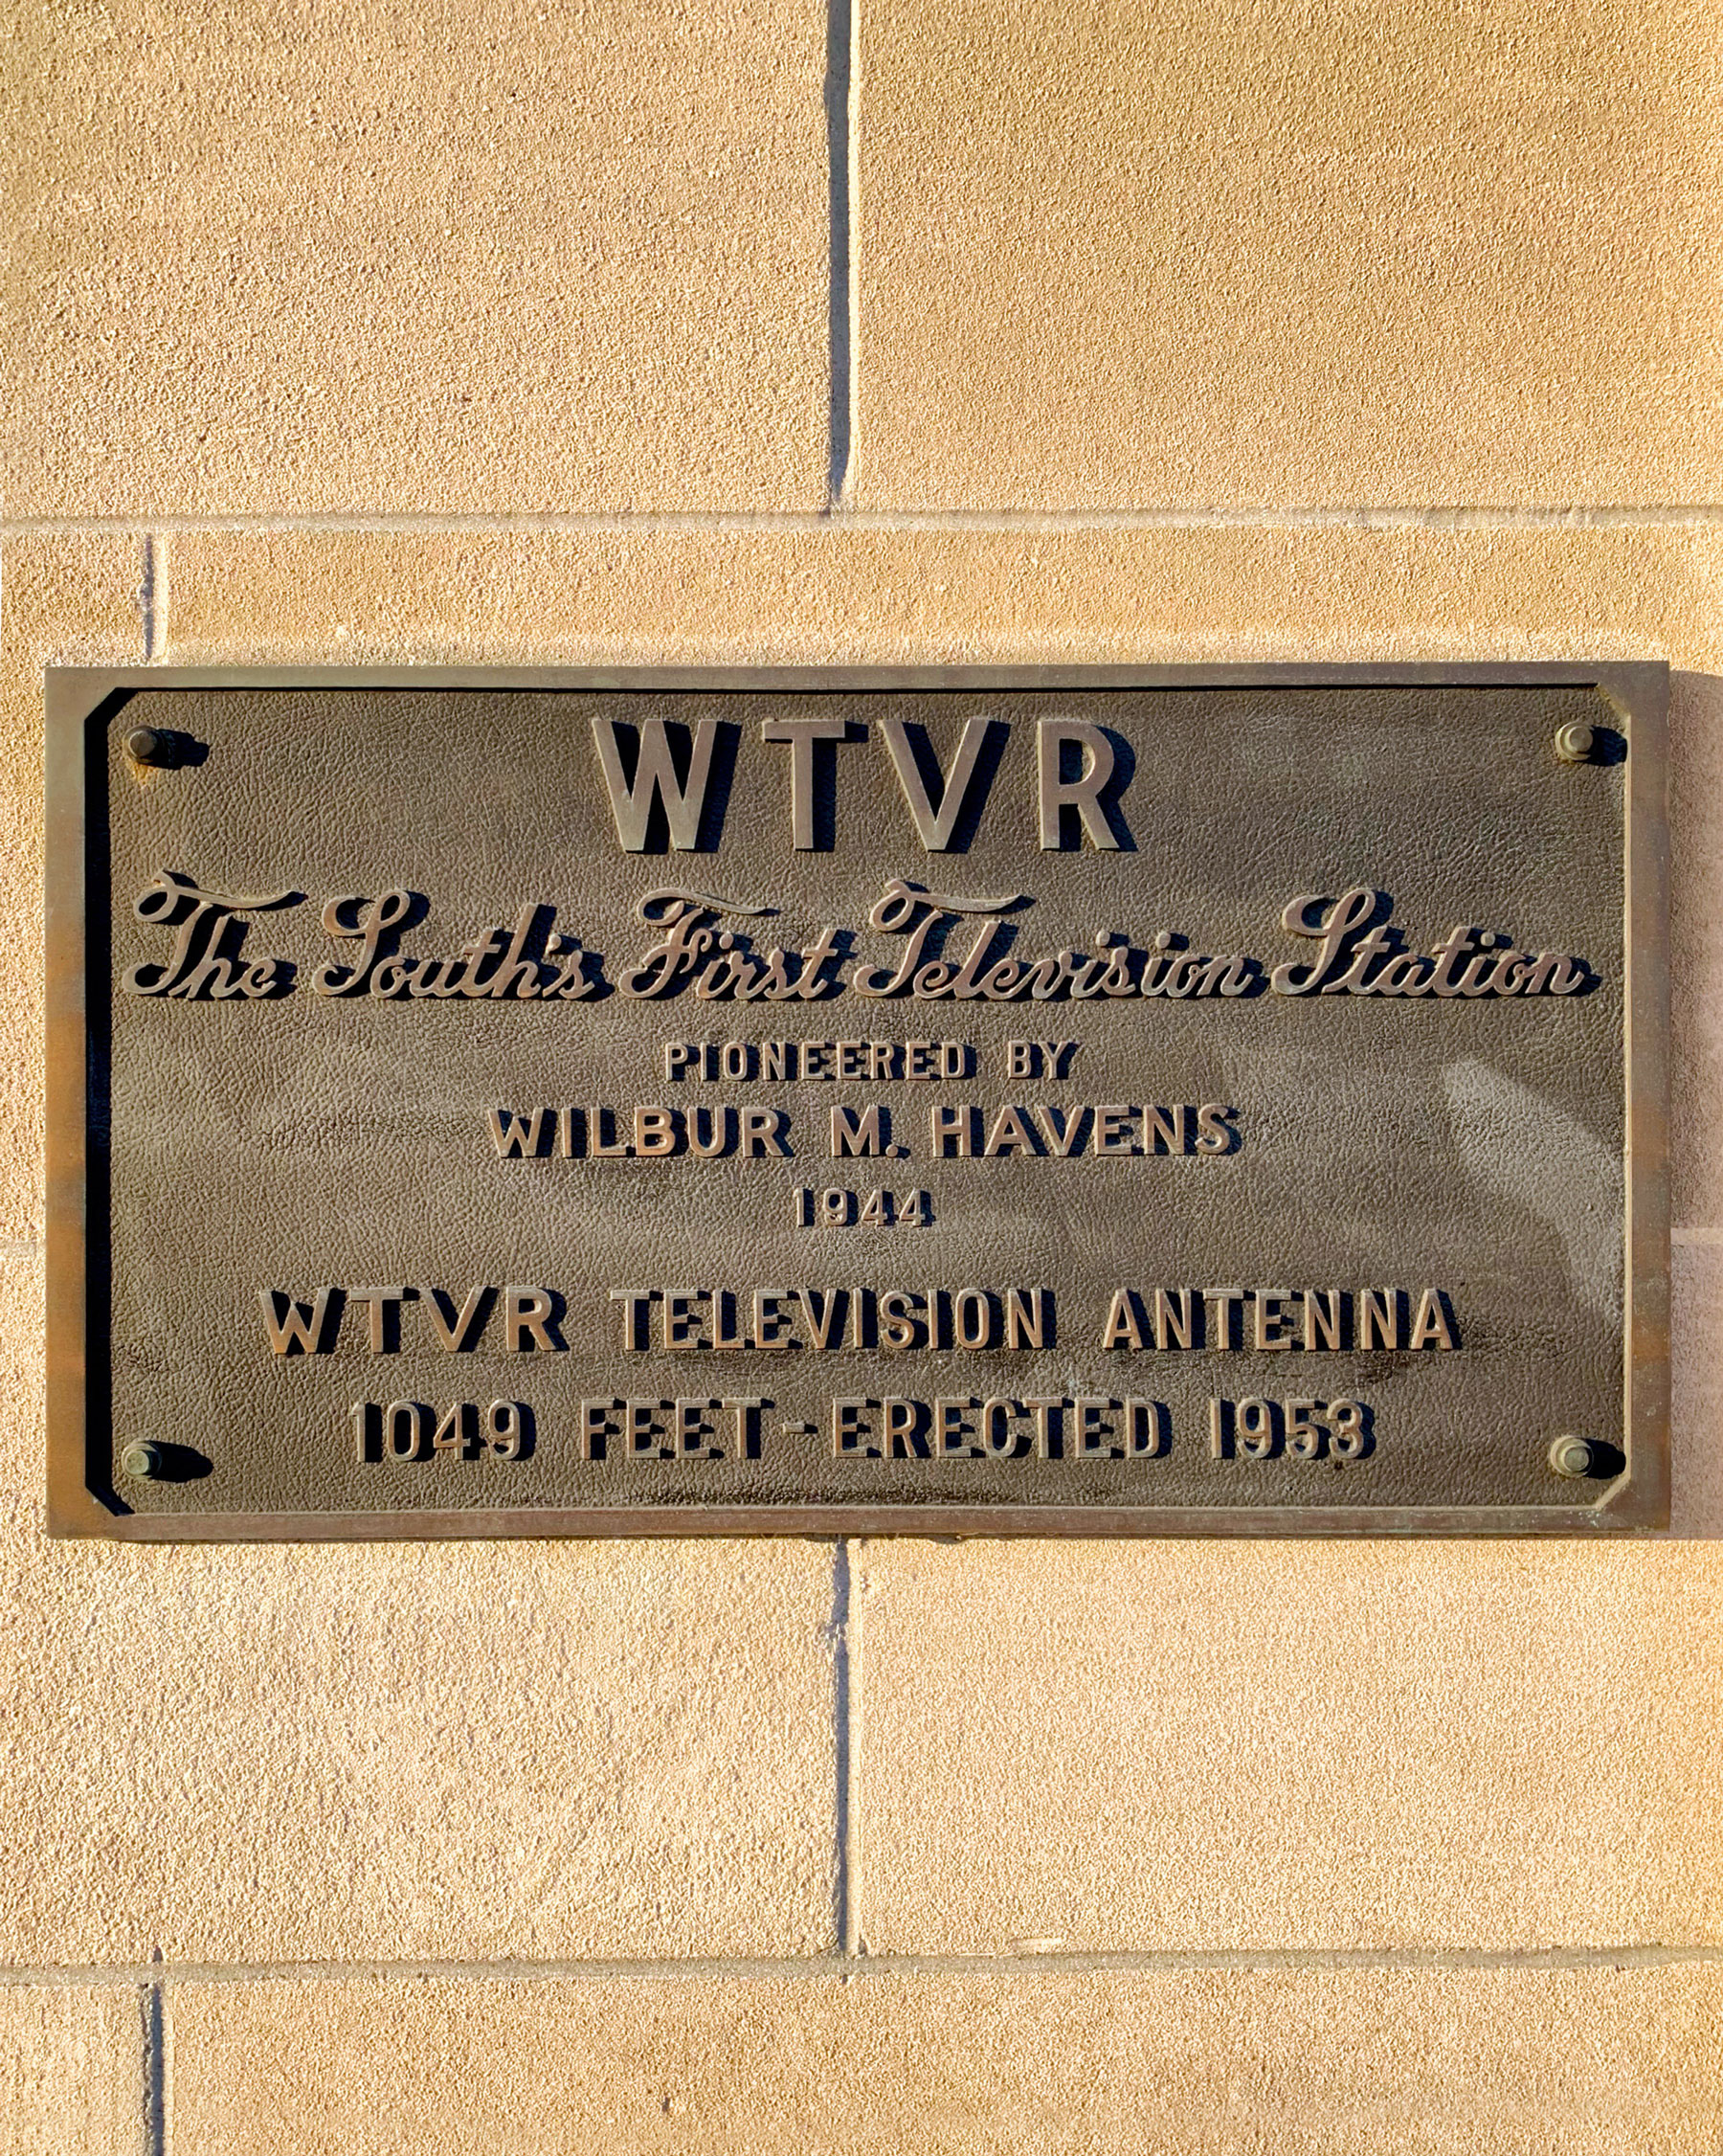 I love this plaque—and now we know how tall the antenna is!